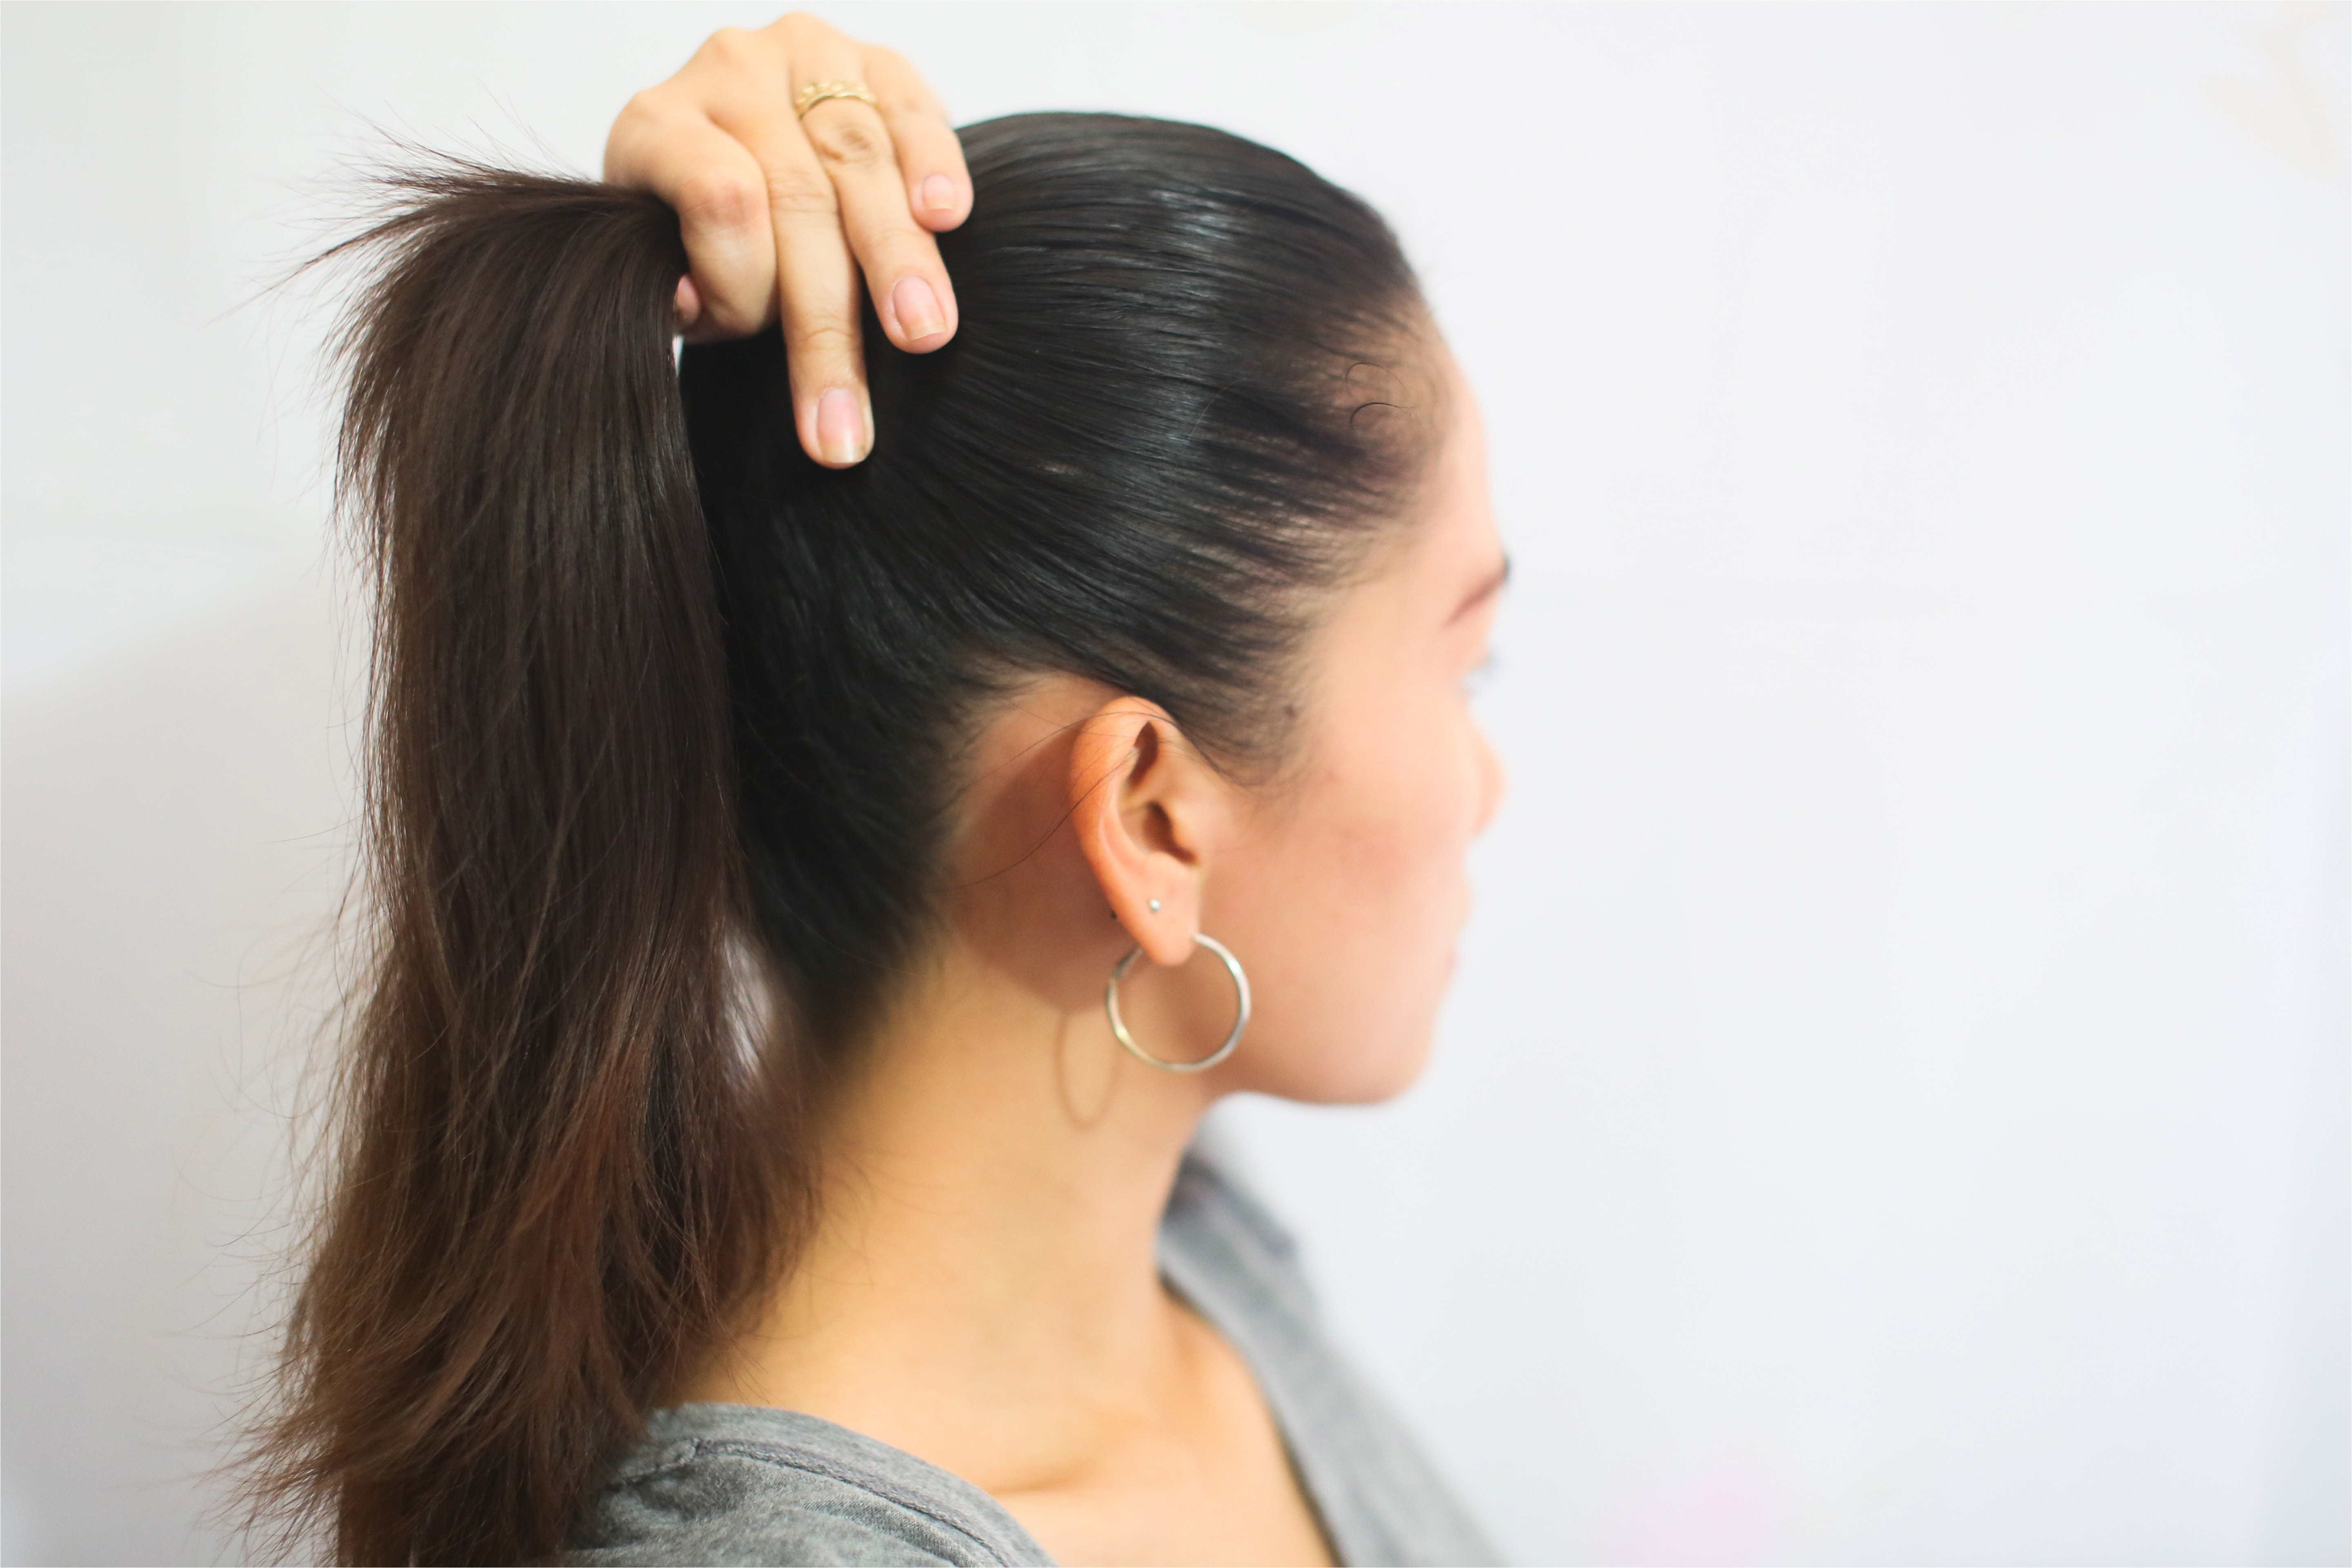 Make Cute Hairstyles for High School